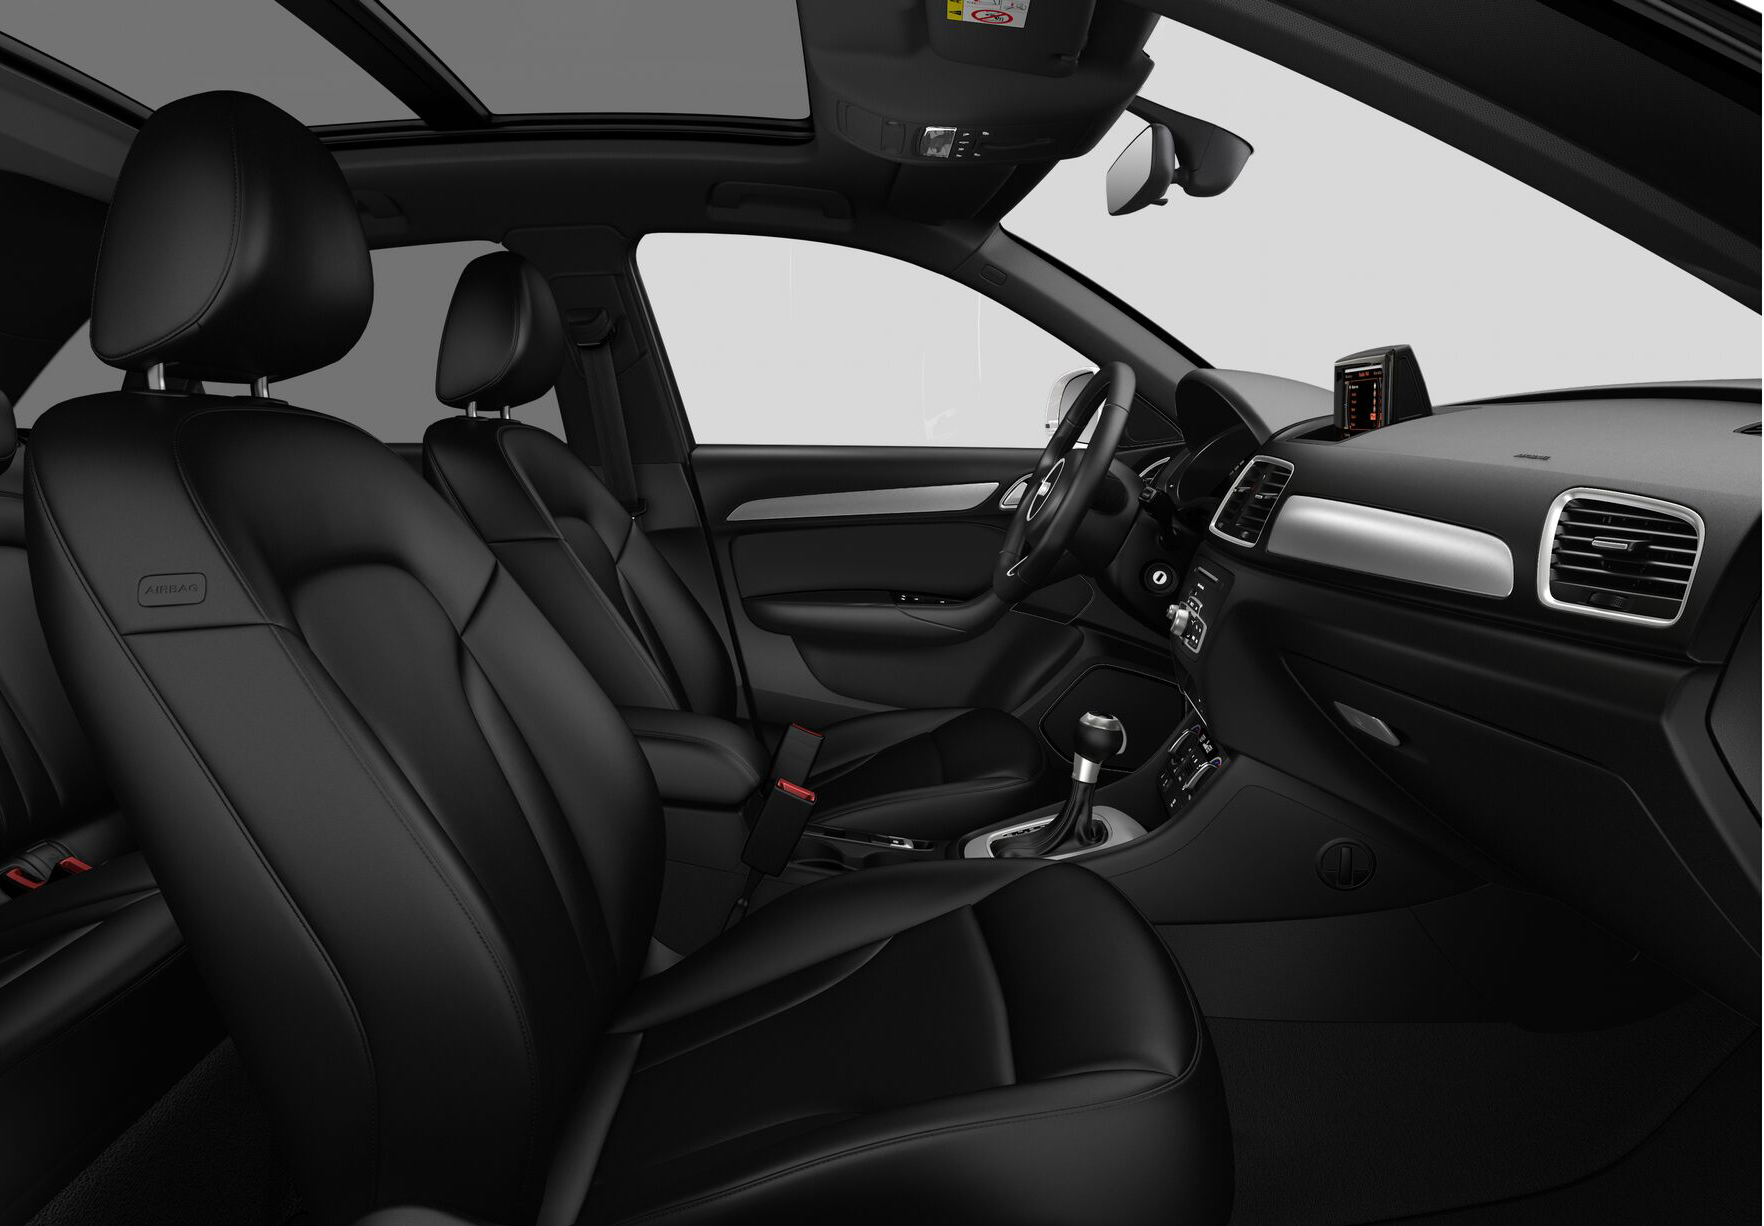 audi q3 premium plus 2018 interior image gallery pictures photos. Black Bedroom Furniture Sets. Home Design Ideas